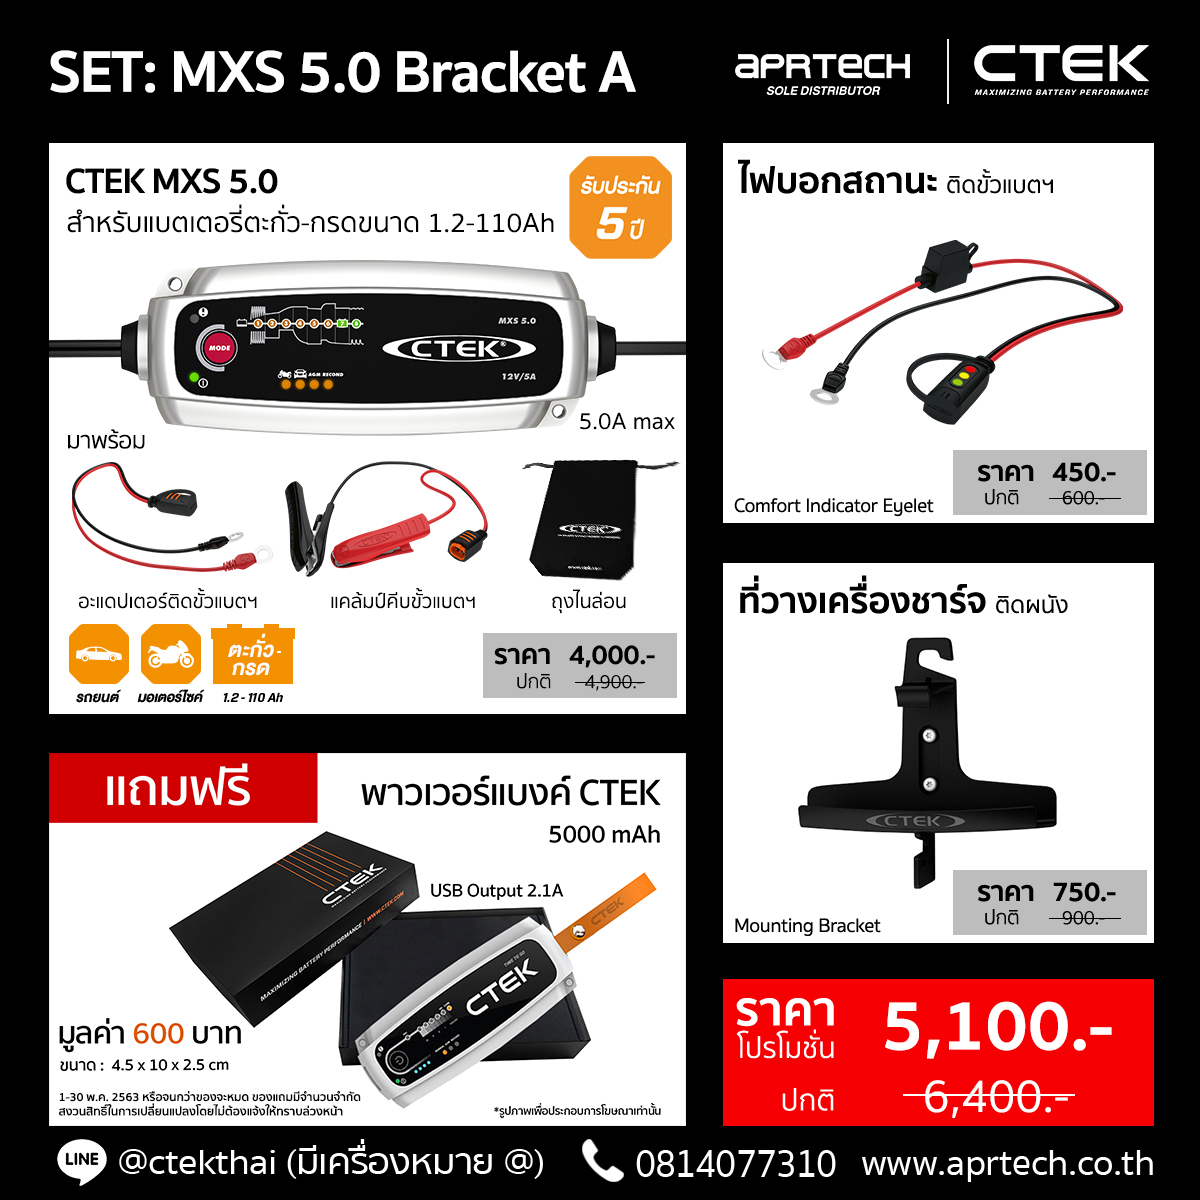 SET MXS 5.0 Bracket A (CTEK MXS 5.0 + Indicator Eyelet + Mounting Bracket)